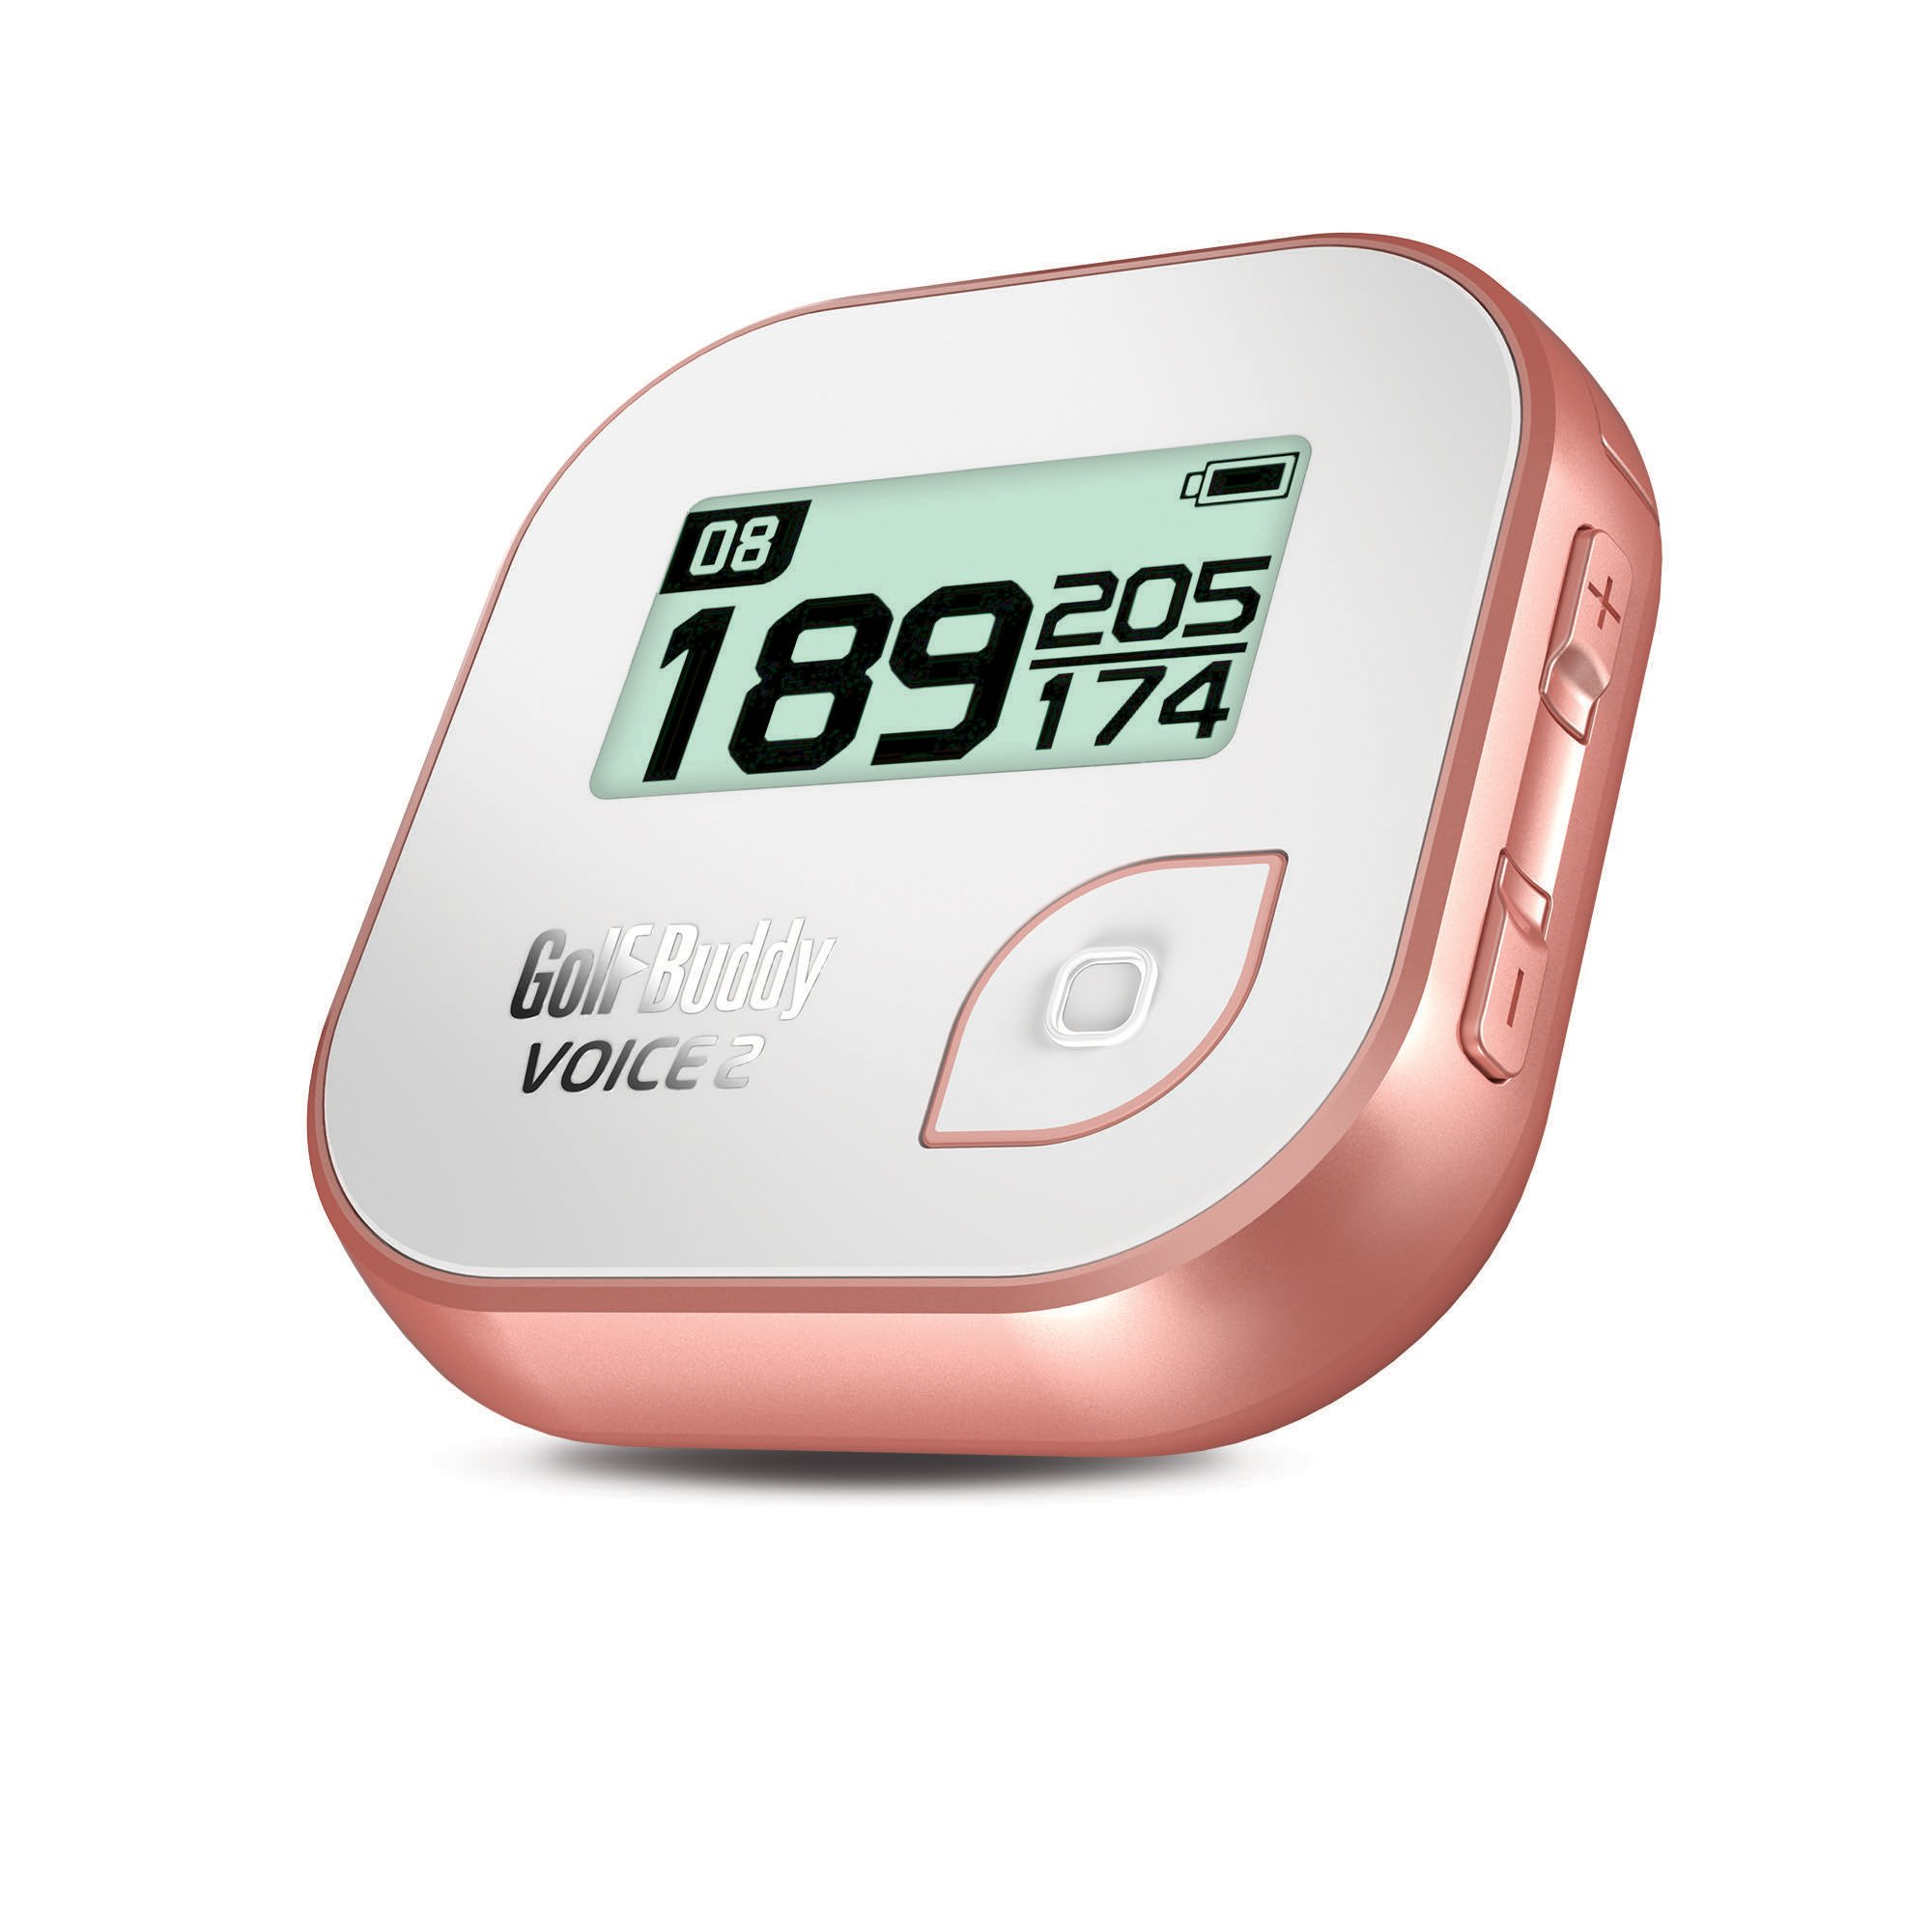 GolfBuddy Voice 2 Golf GPS/Rangefinder, White/Rose Gold